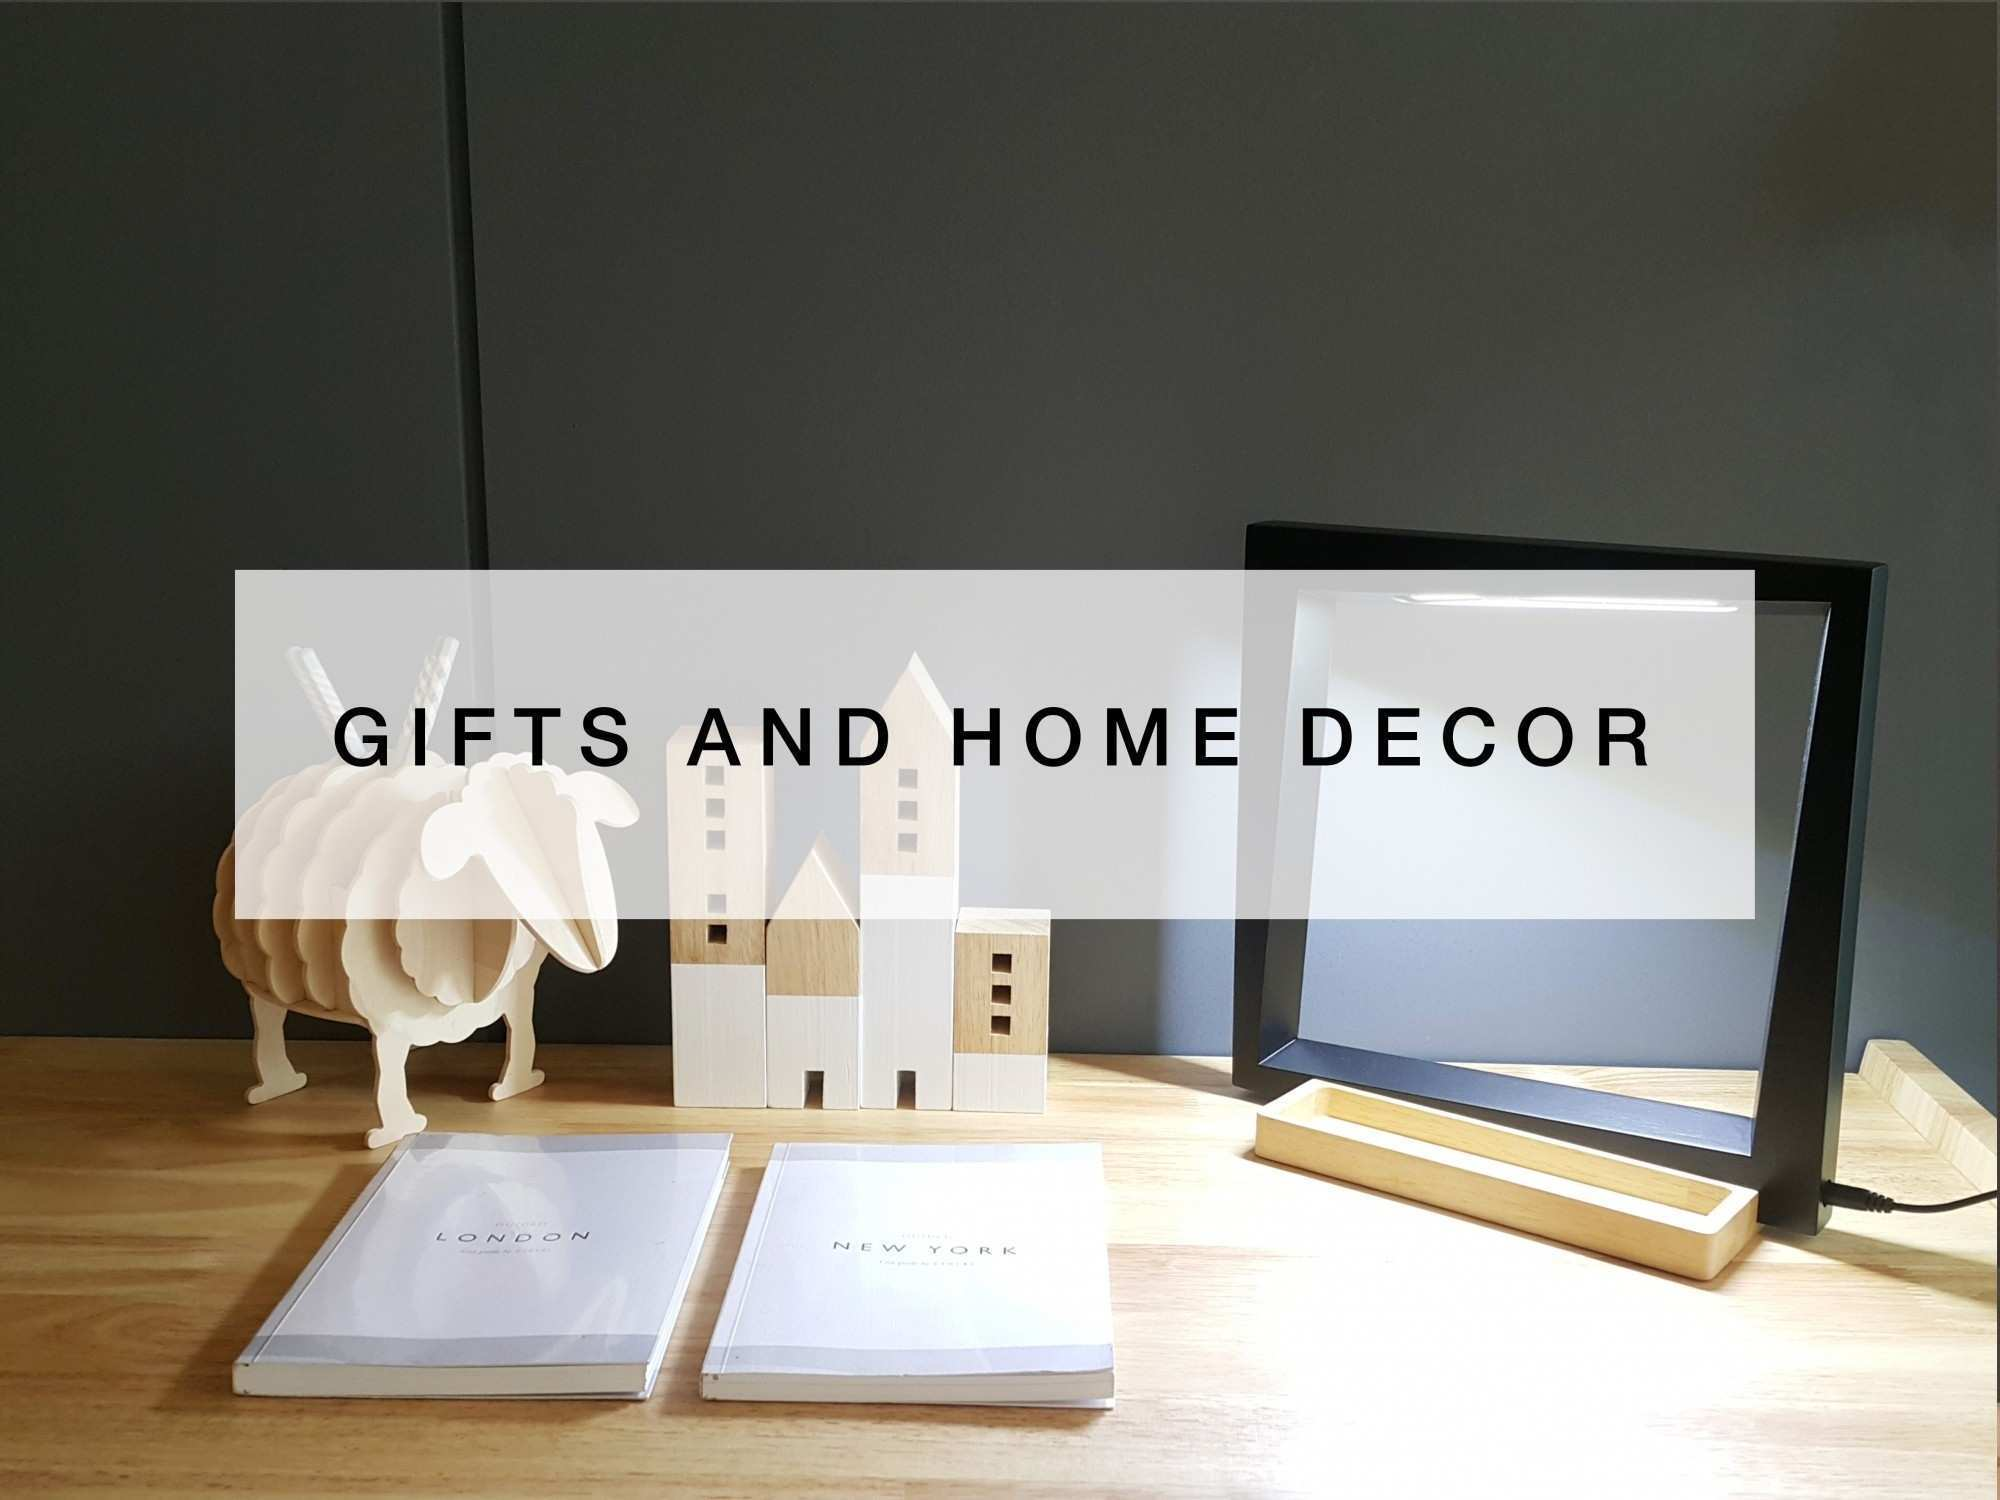 25 Home Decoration and Gifts